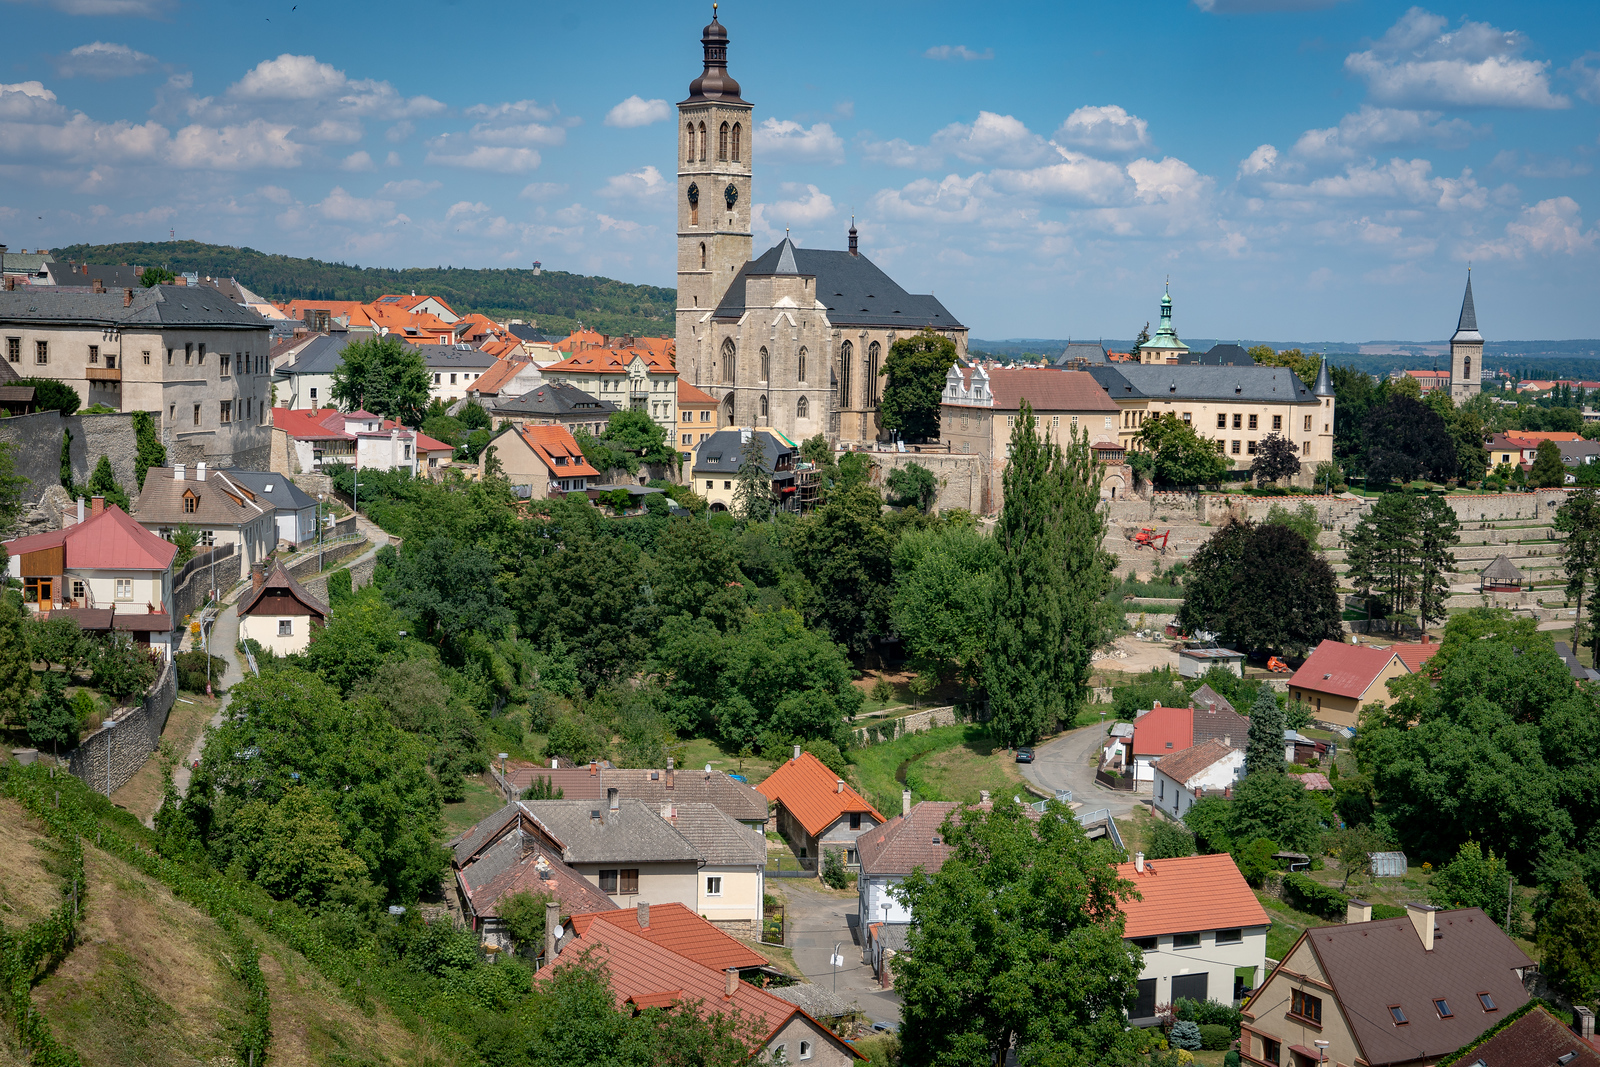 8 Facts You Might Not Have Known About the Czech Republic